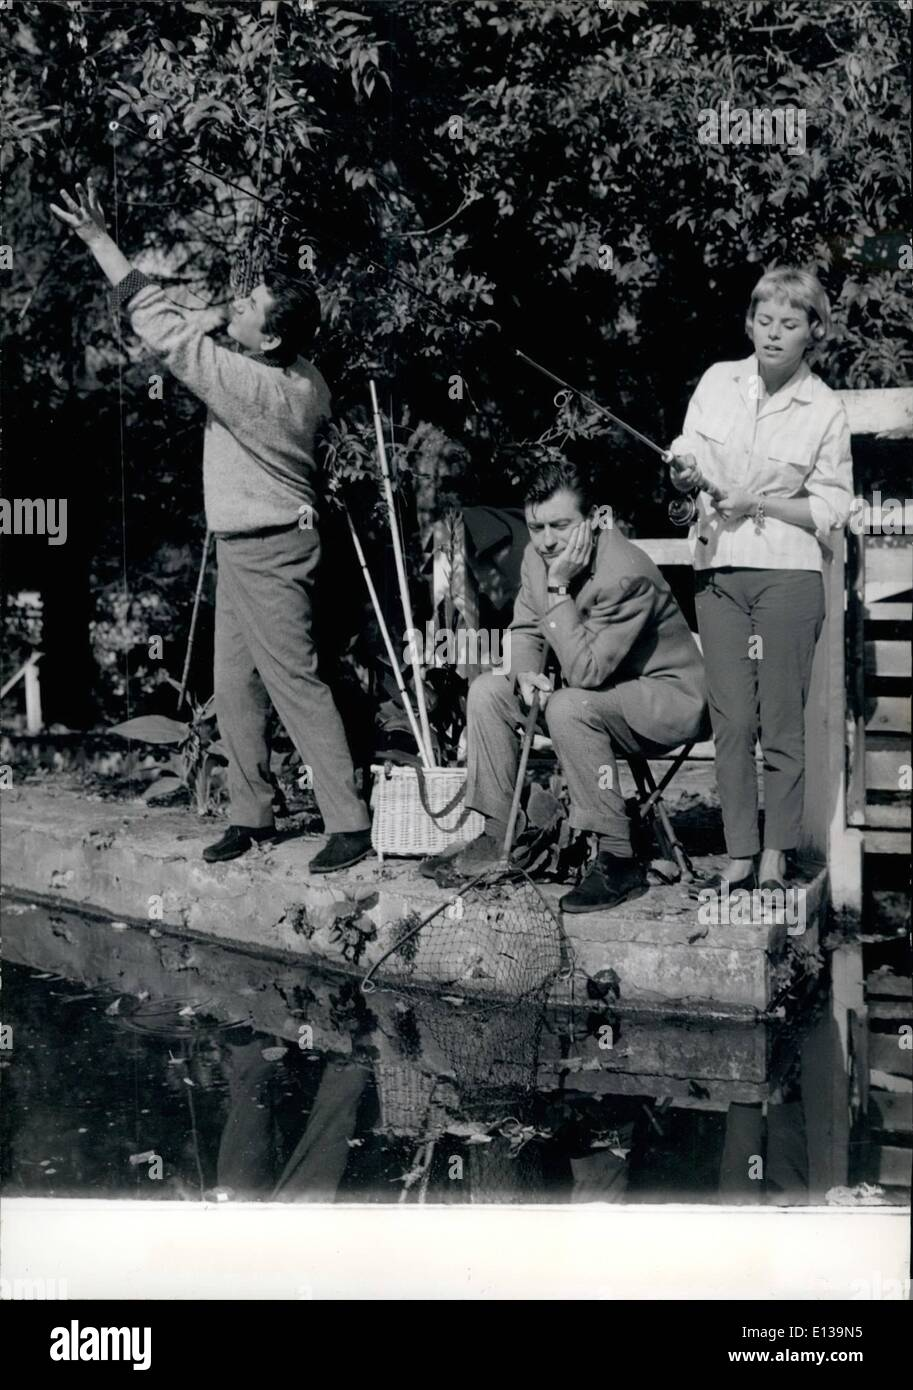 Feb. 29, 2012 - SCREEN STARS GO ANGLING DANIEL GELIN, FRANCOIS PERIER AND GENEVIEVE CLUNY (FROM LEFT TO RIGHT) ANGLING - Stock Image